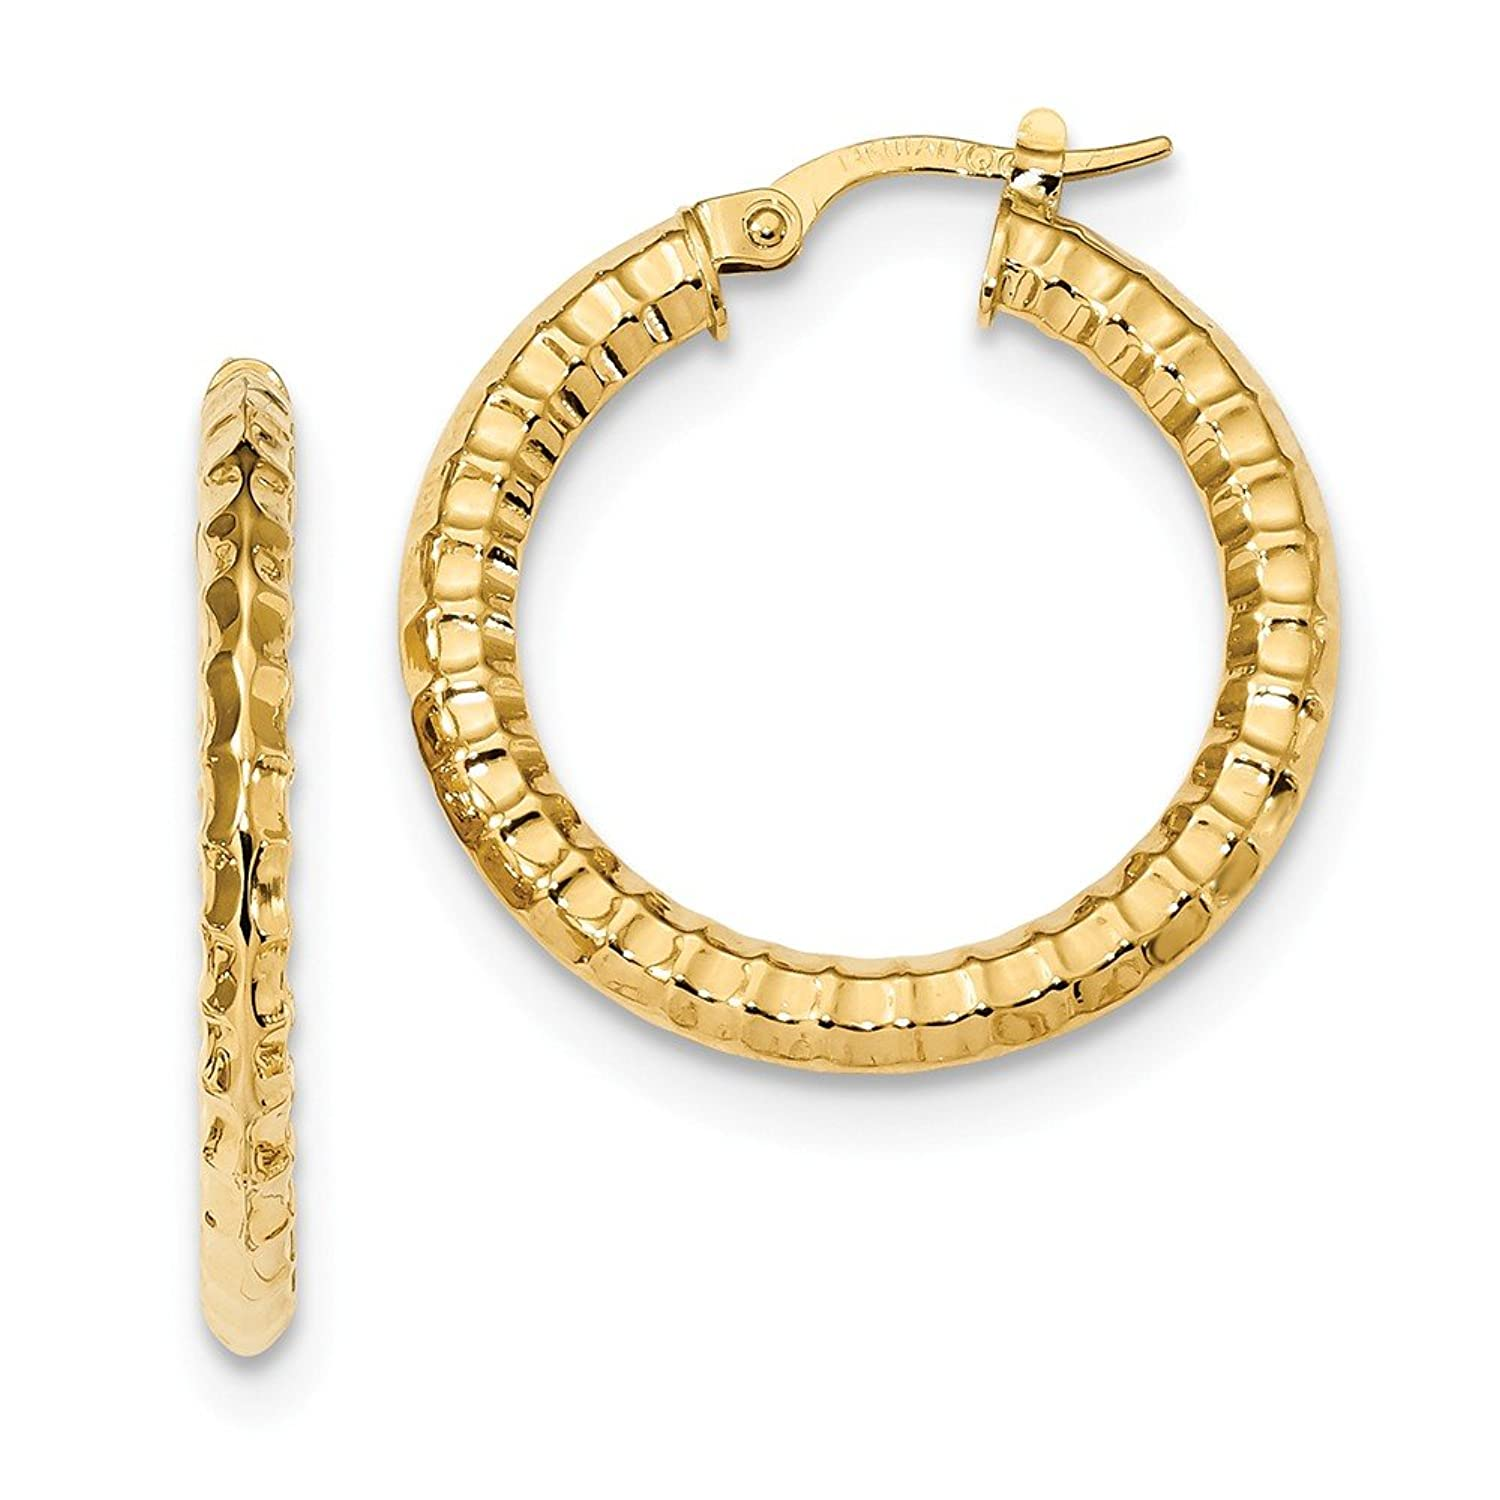 14kt Yellow Gold Polished and Textured Hoop Earrings